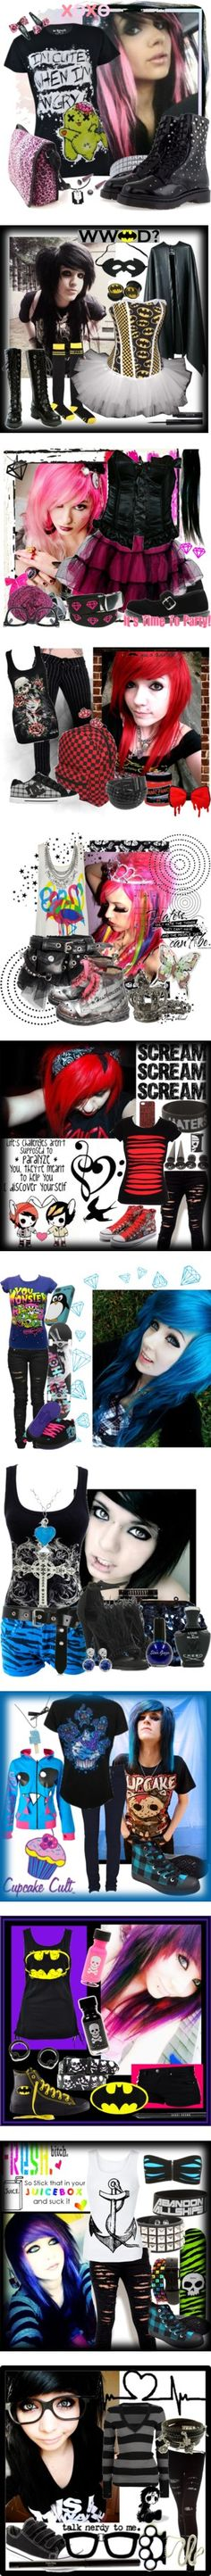 """Emo and Scene3"" by xxmusic-luverxx ❤ liked on Polyvore"